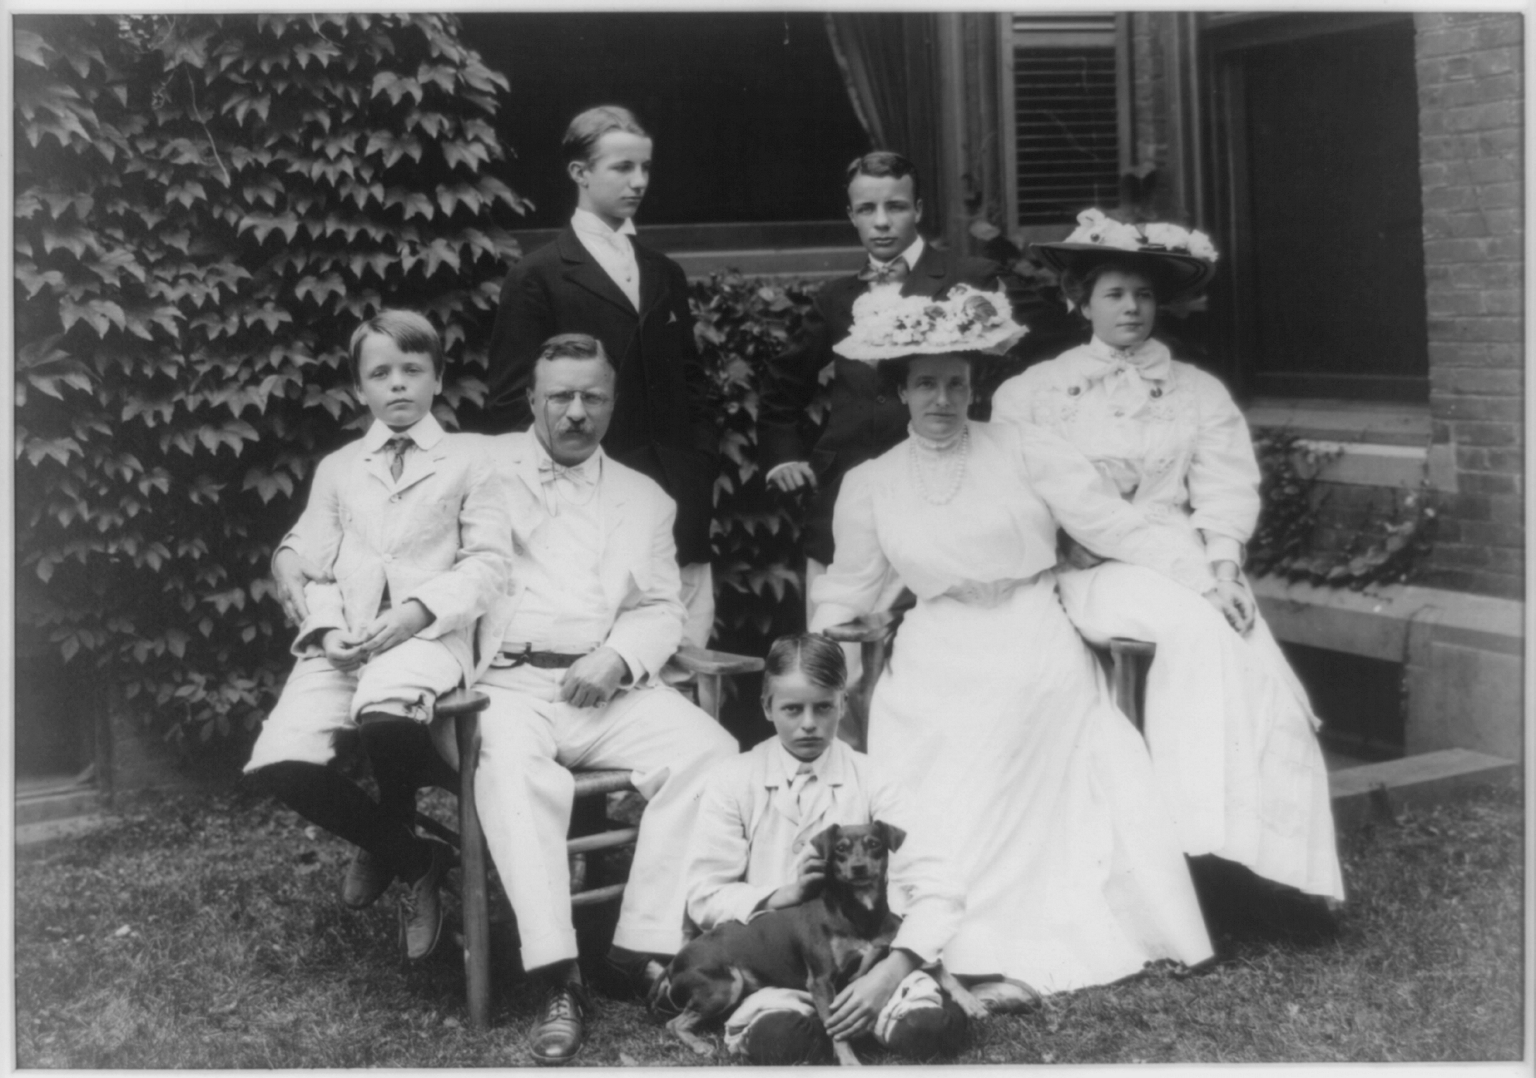 Theodore Roosevelt and his family with a dog